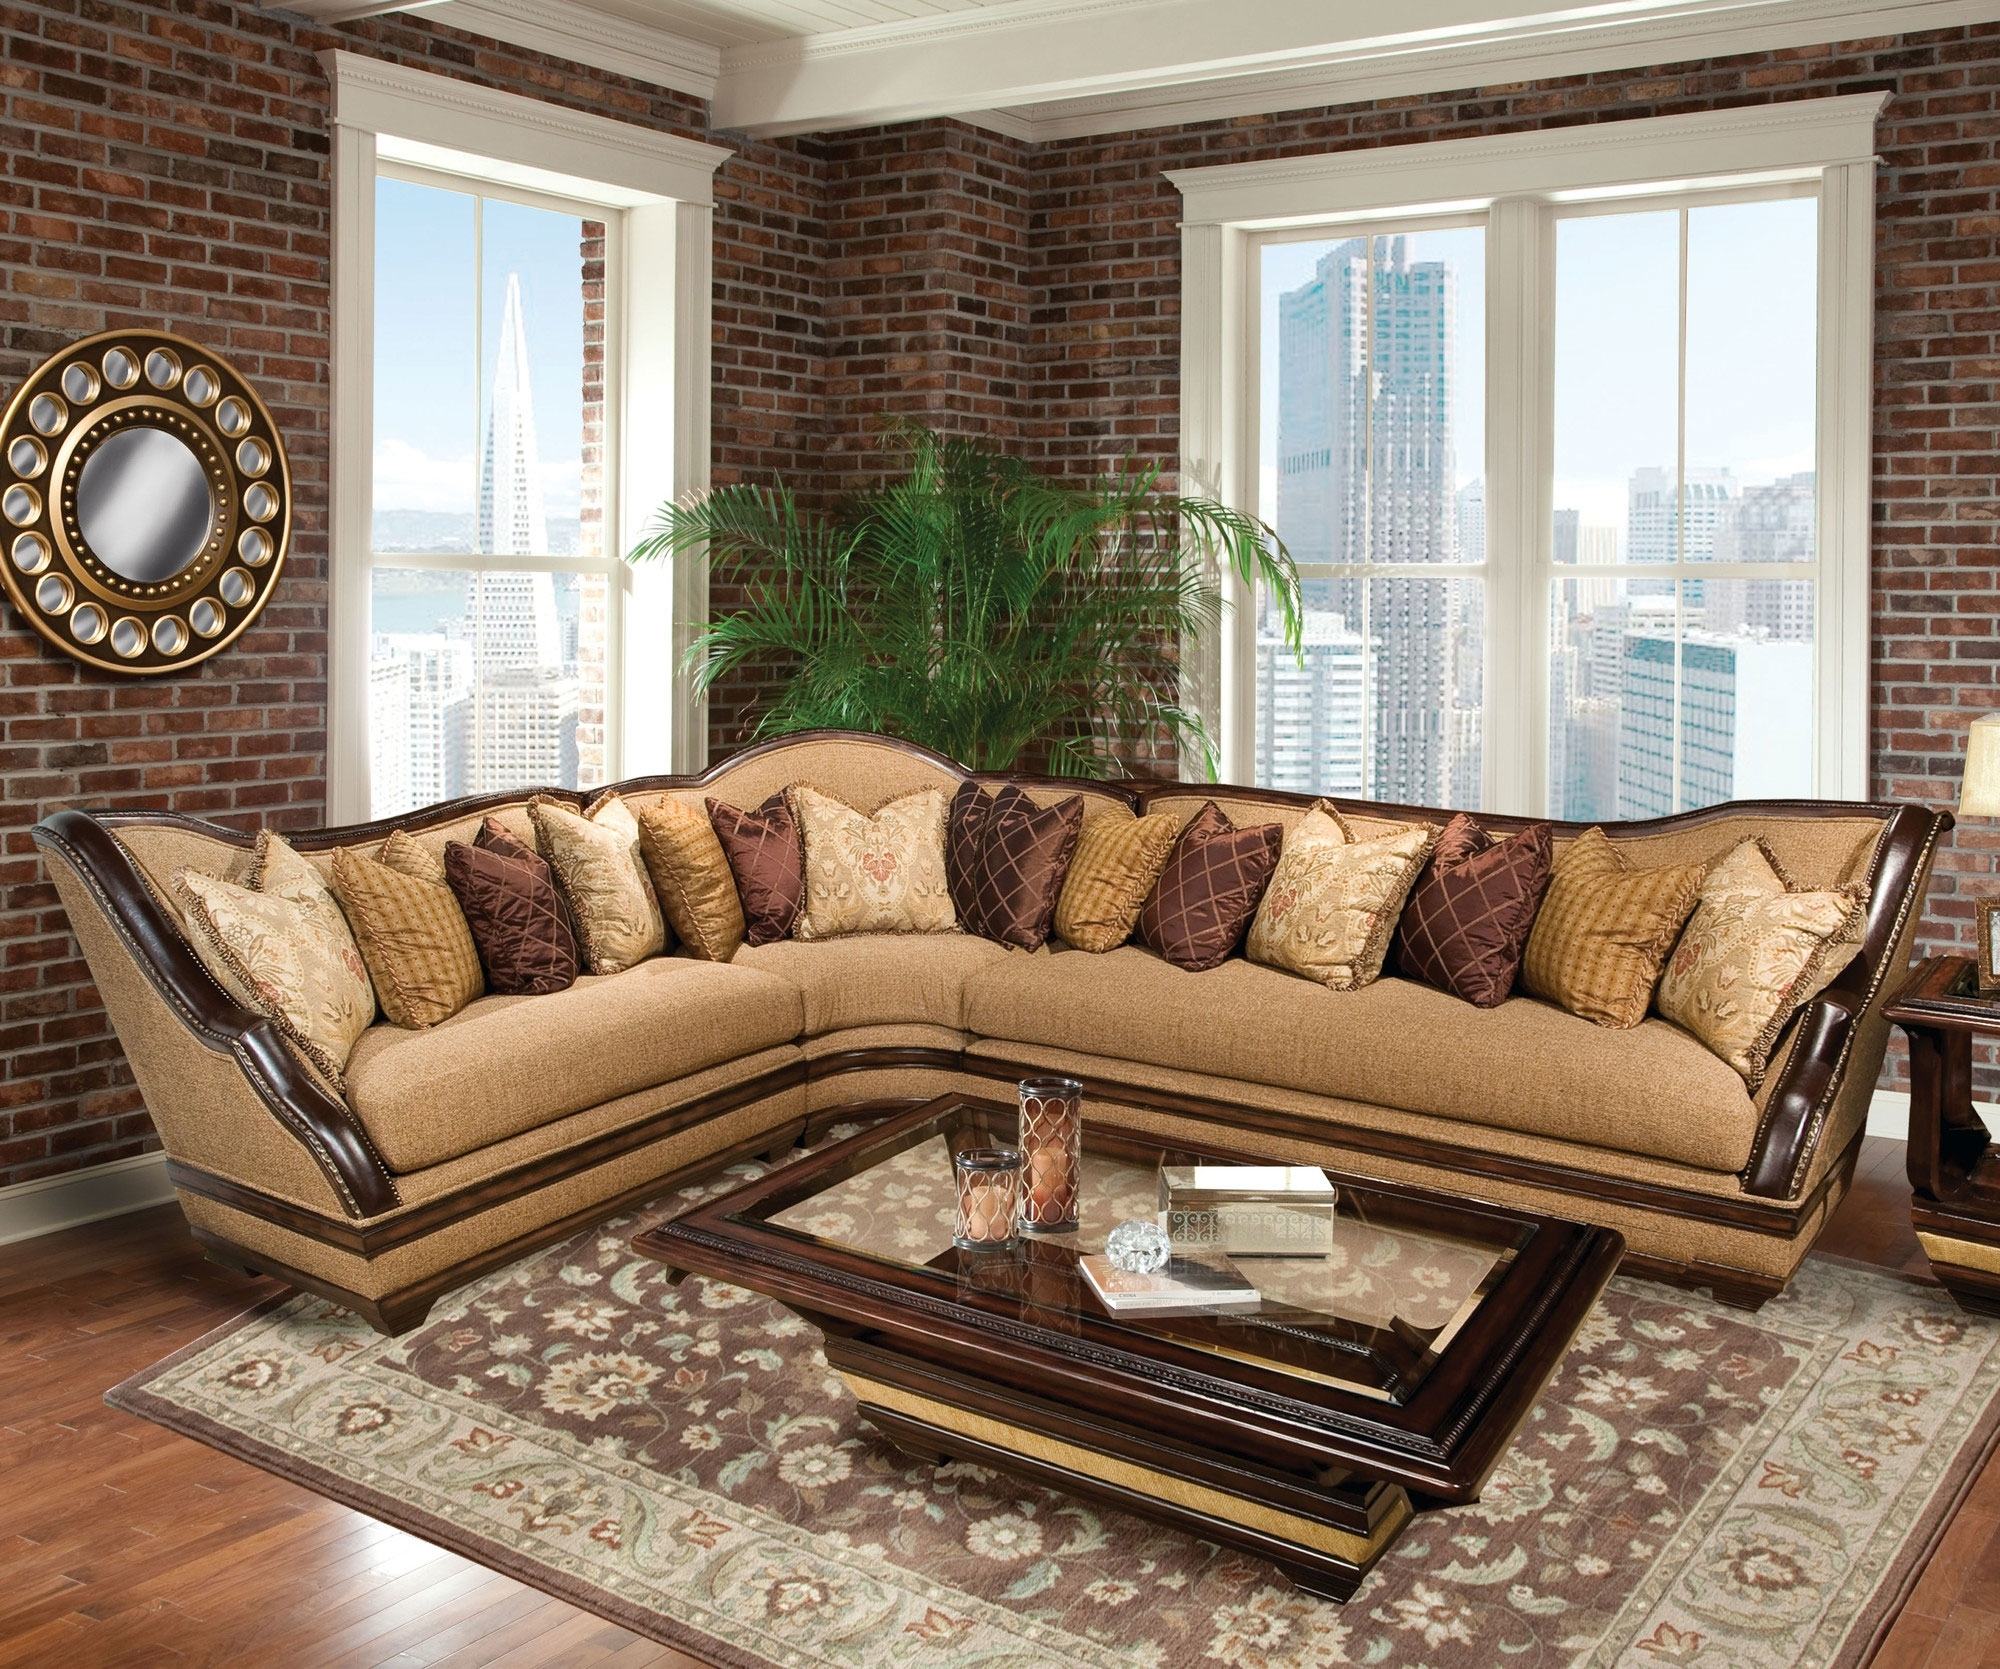 Benetti's Italia Beladonna Wood Trim Sectional Sofa Set The Throughout Luxury Sectional Sofas (View 3 of 10)